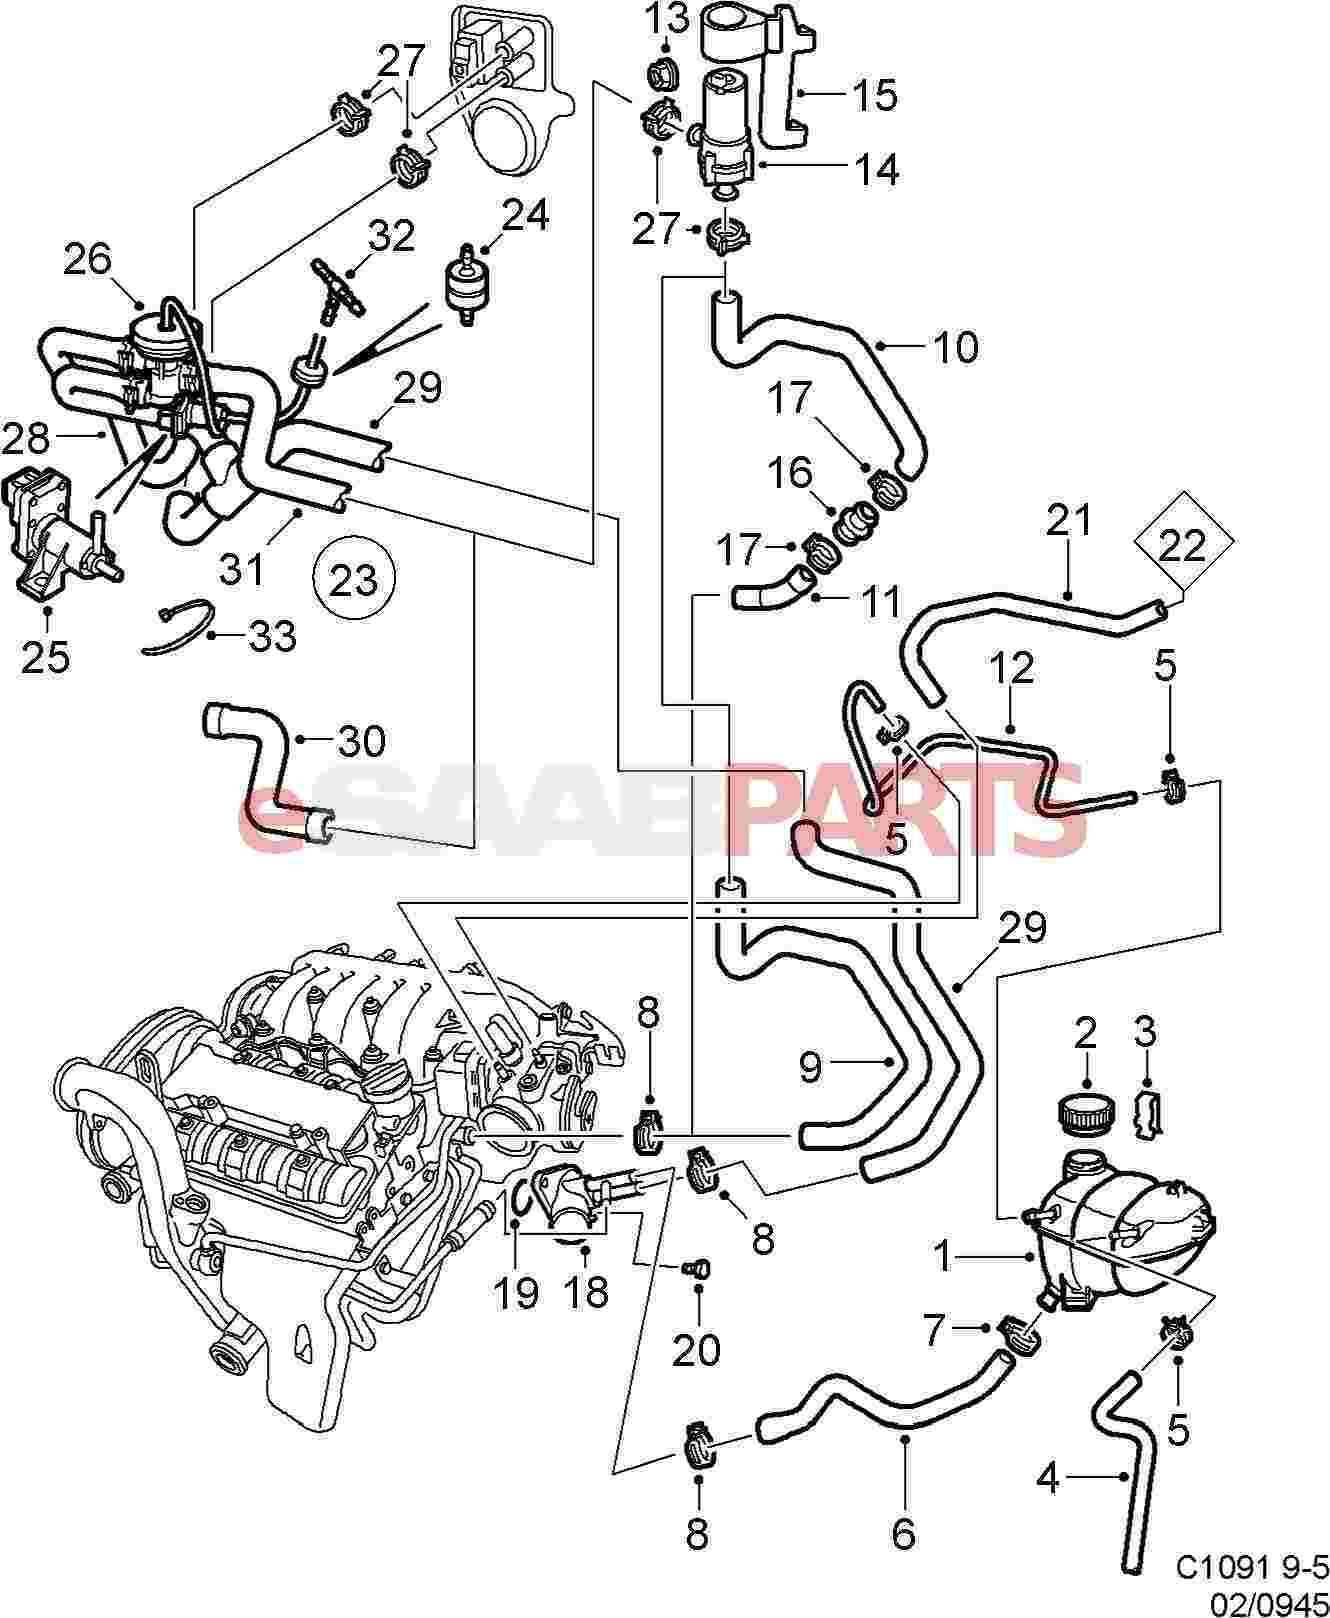 Saab V6 Engine Diagram